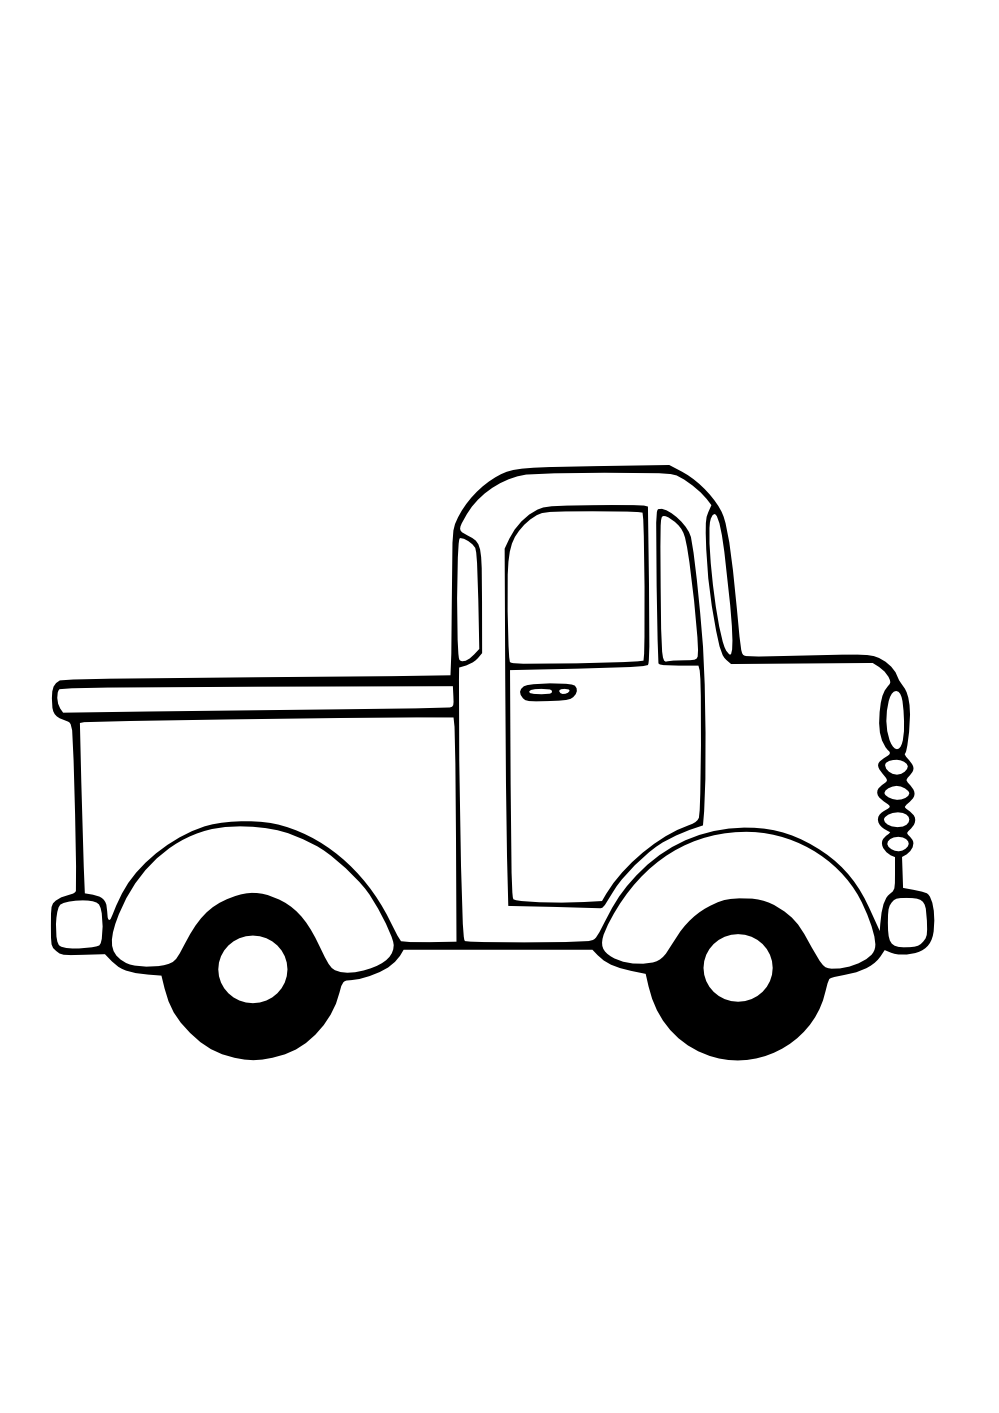 truck clipart black and white clipart panda free clipart images rh pinterest com free clipart truck driver free truck clipart images